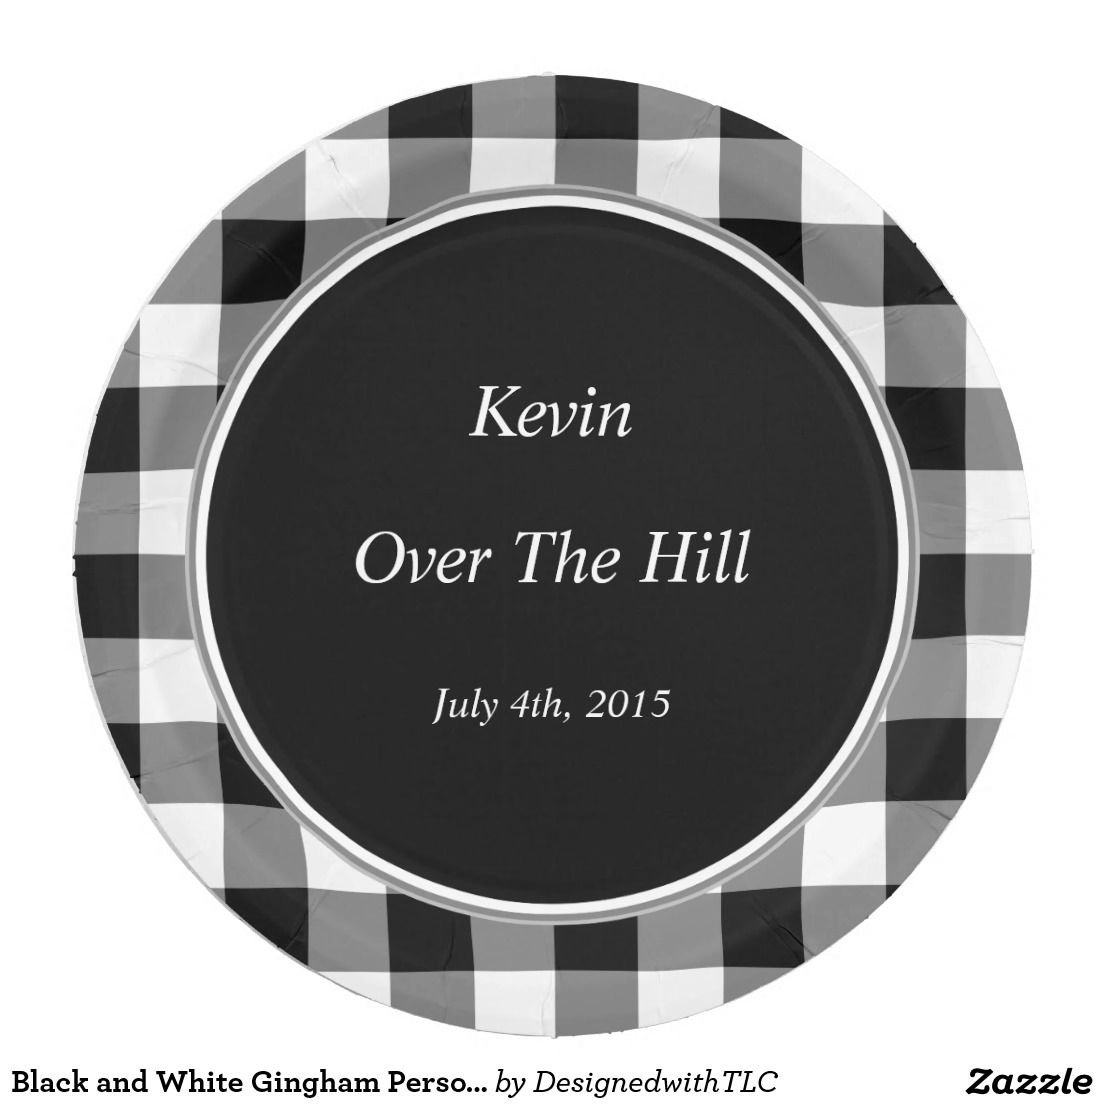 Black and White Gingham Personalized Event Plates 9 Inch Paper Plate  sc 1 st  Pinterest & Black and White Gingham Personalized Event Plates 9 Inch Paper Plate ...